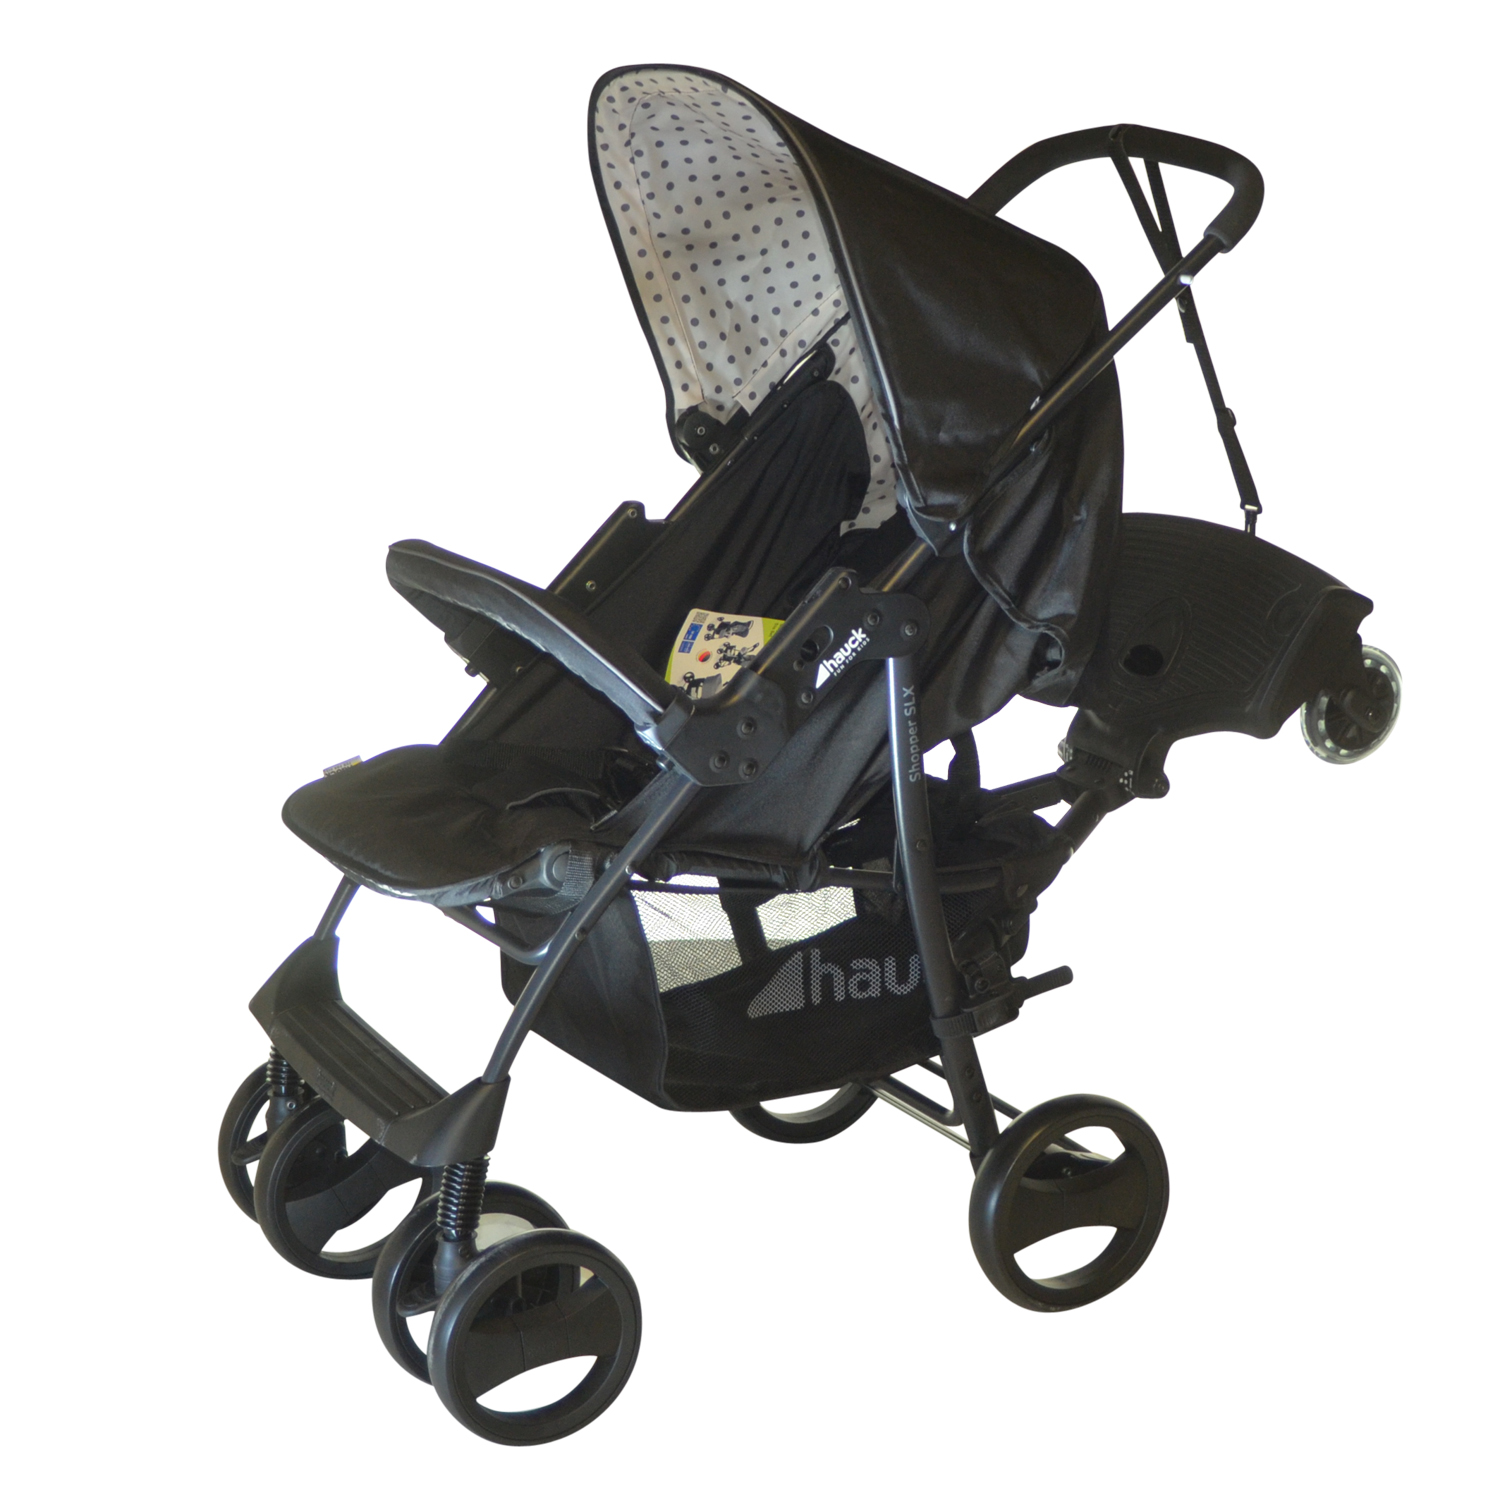 Pushchairs Ride On Buggy Board And Saddle For Buggies Twins Travel Systems